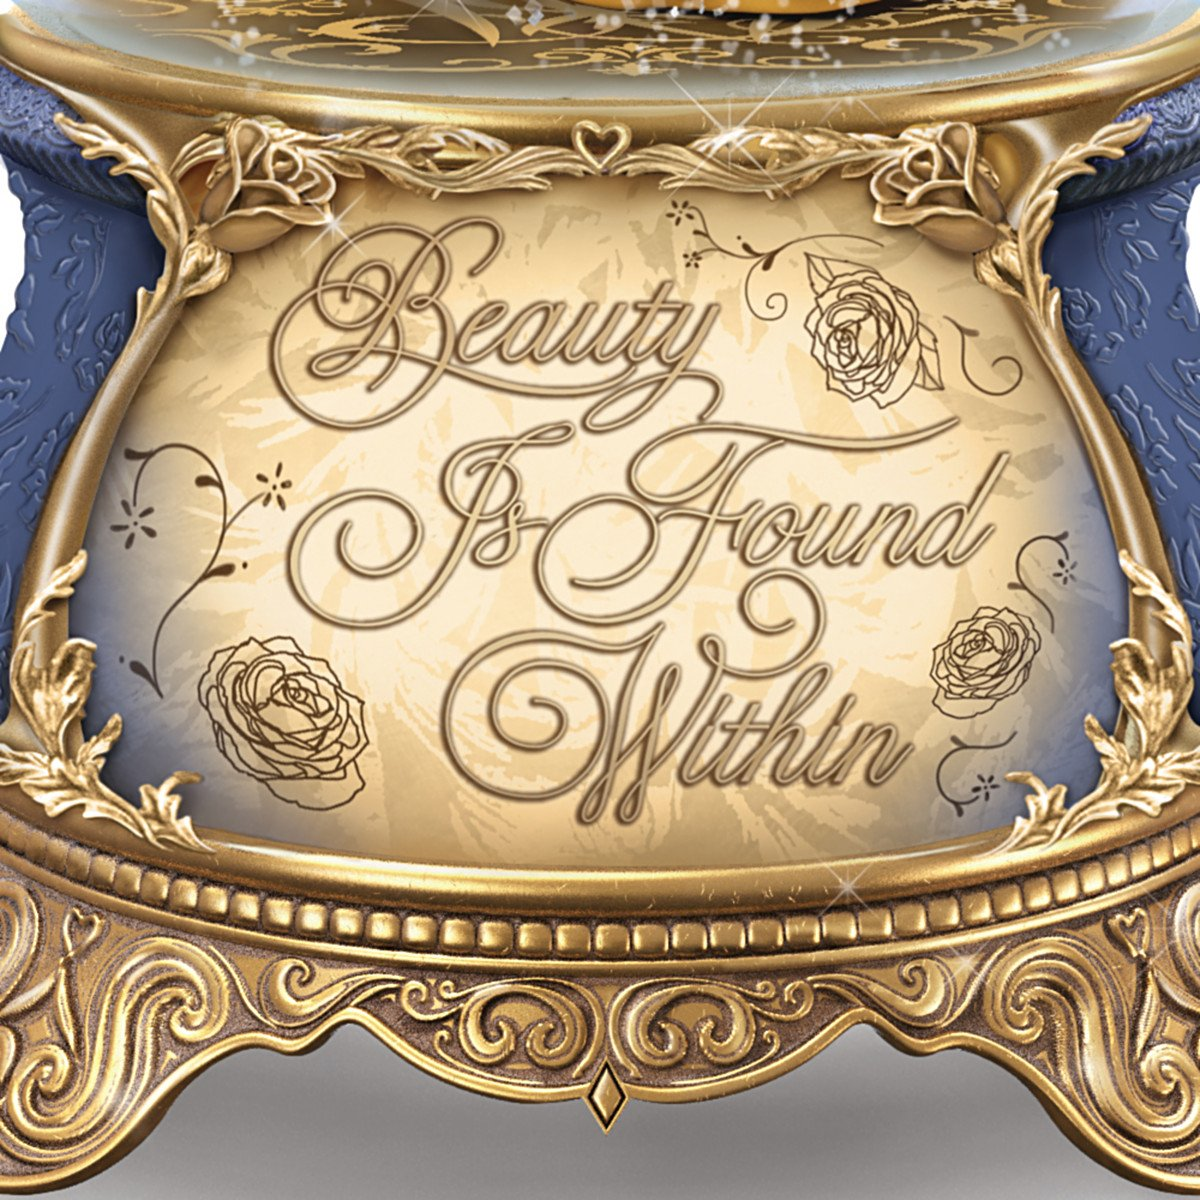 Bradford Exchange The Disney Beauty and the Beast Dance in a Musical Glitter Globe by Bradford Exchange (Image #3)